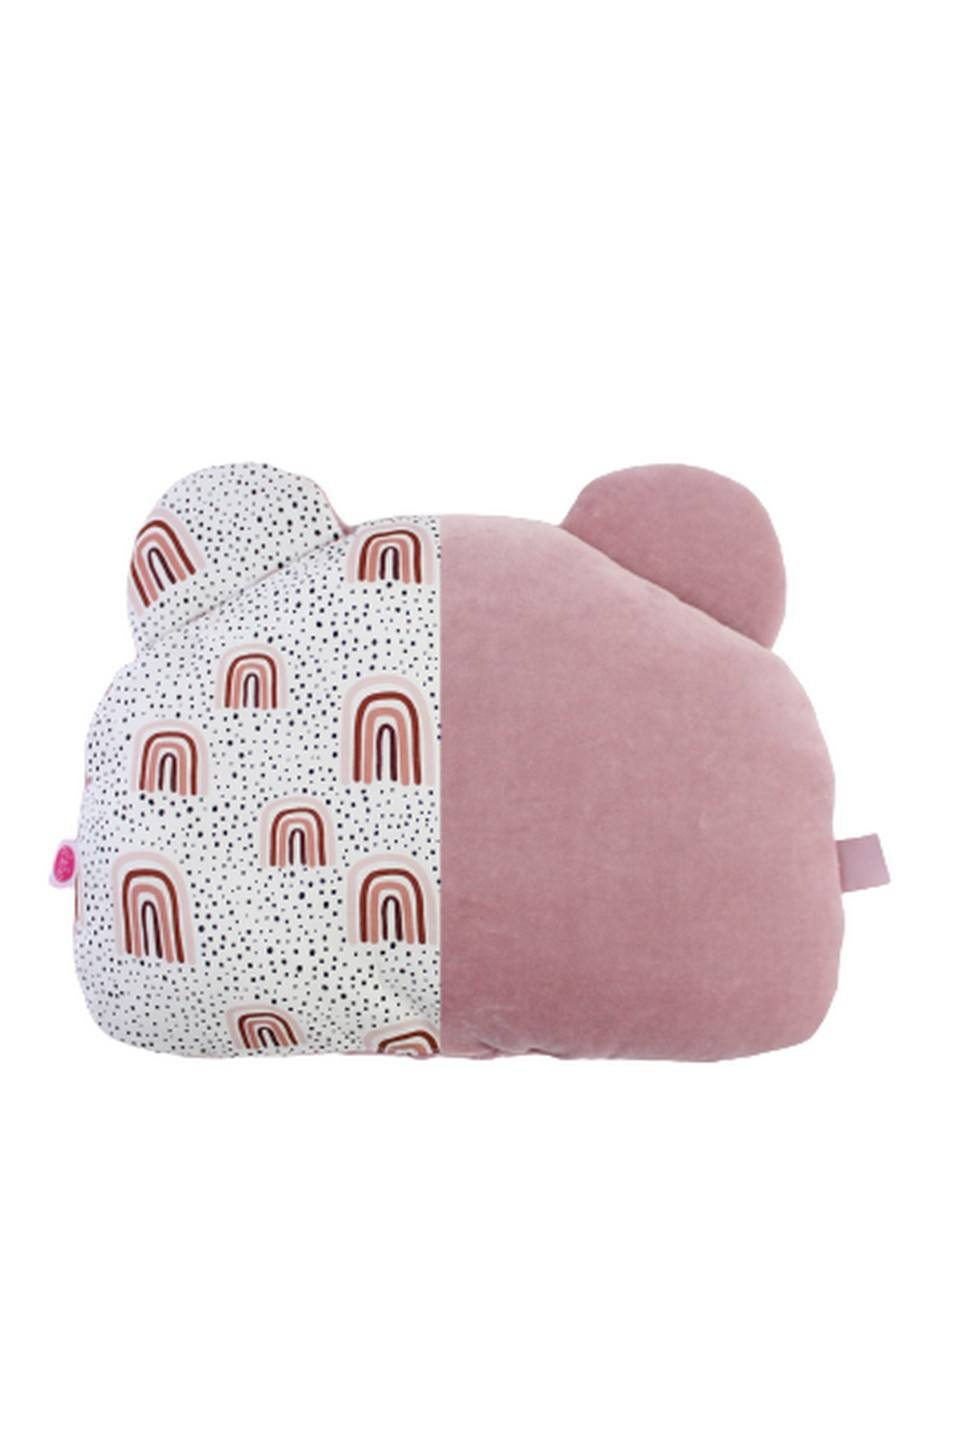 Dirty Pink and Rainbows Teddy Bear Baby Pillow